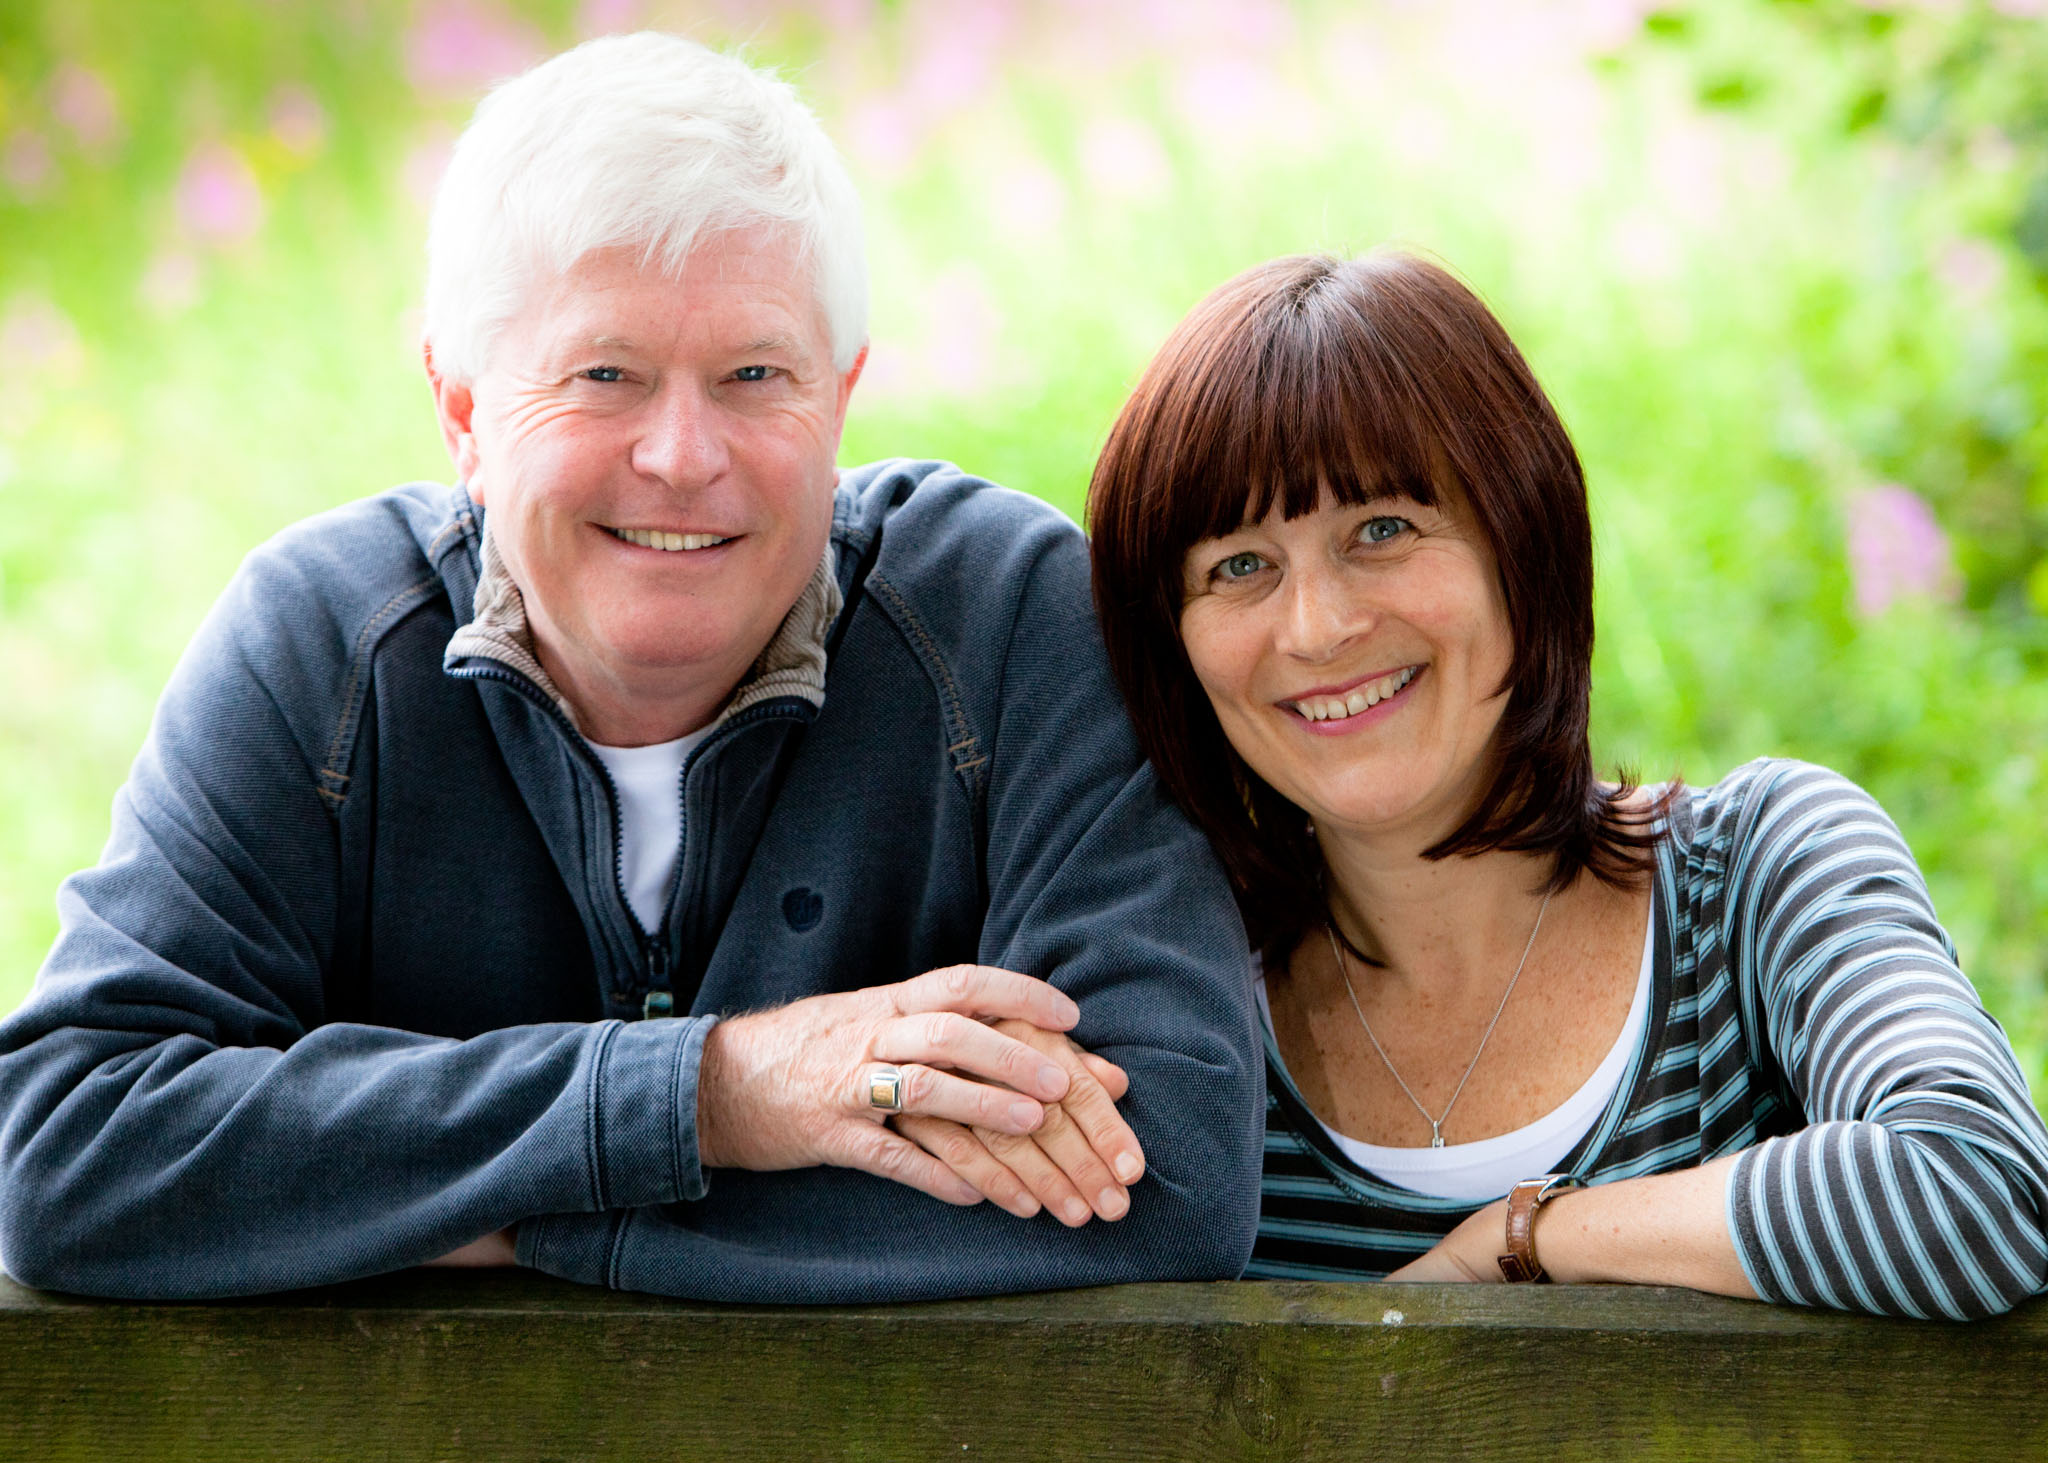 A couples portrait in Moore, Cheshire by Cheshire lifestyle photographer Andrew Collier Photography